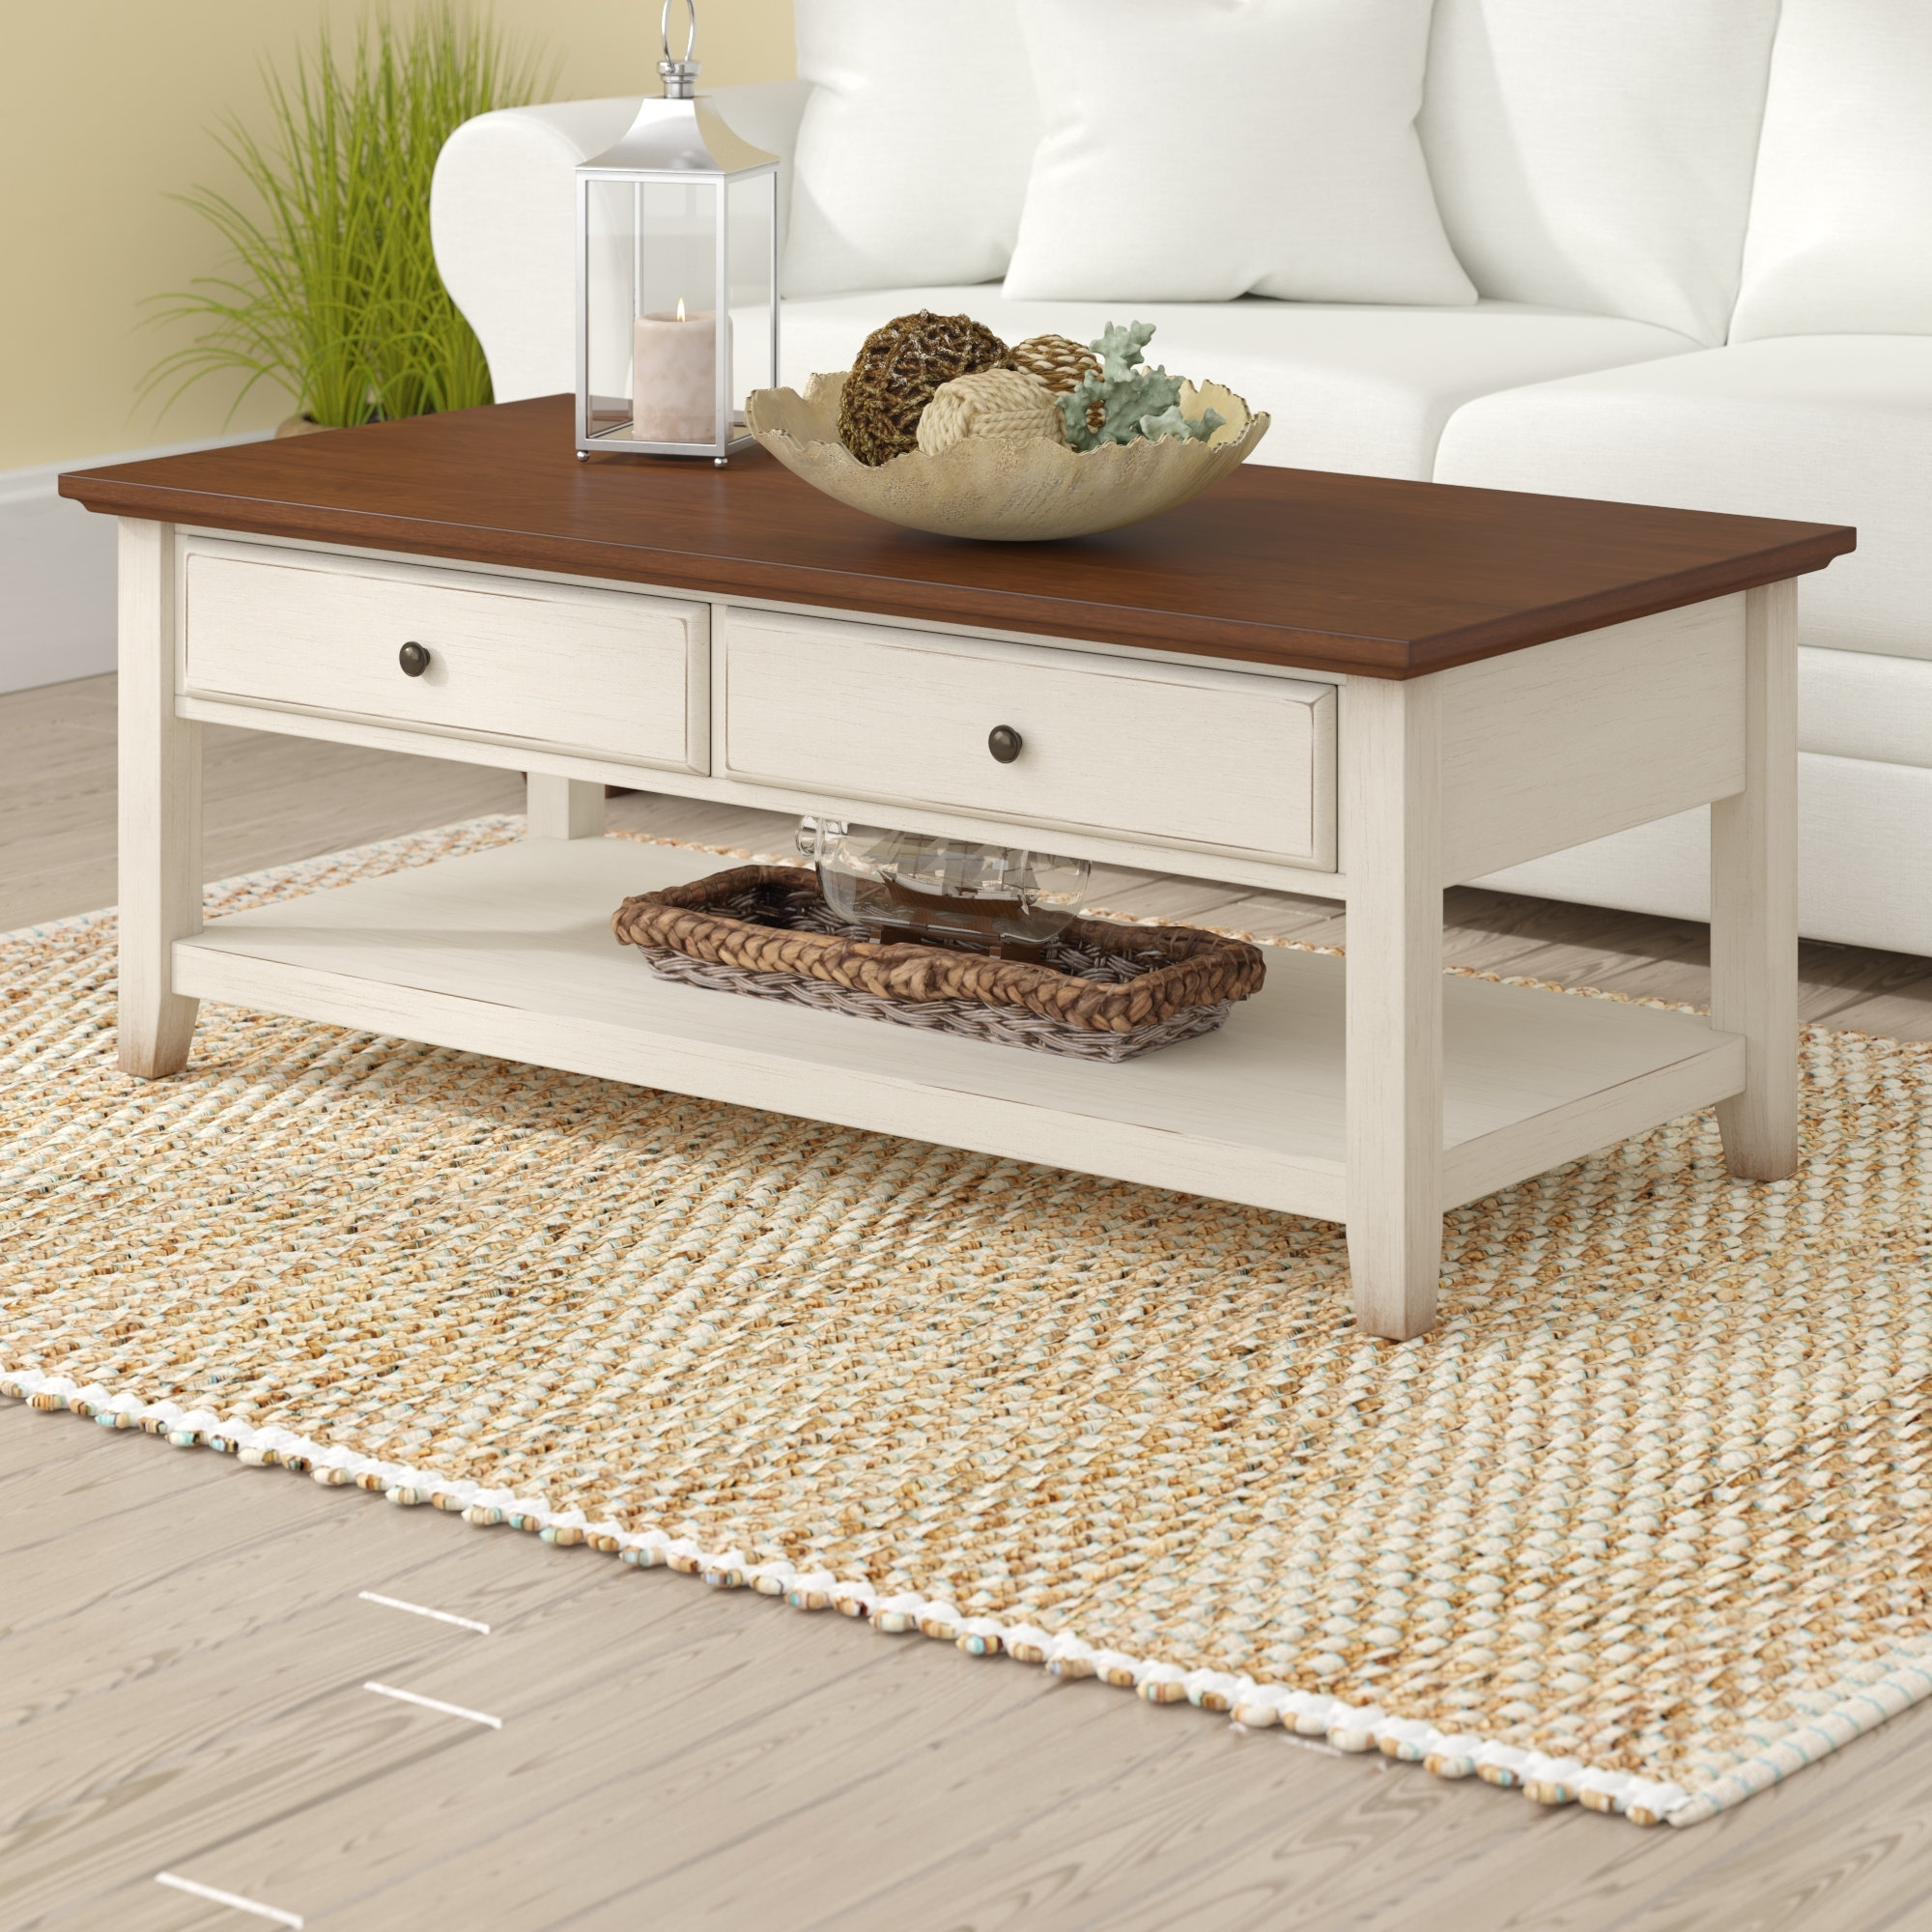 Trendy White Wash 2 Drawer/1 Door Coffee Tables Throughout Beachcrest Home Willow Coffee Table & Reviews (View 18 of 20)